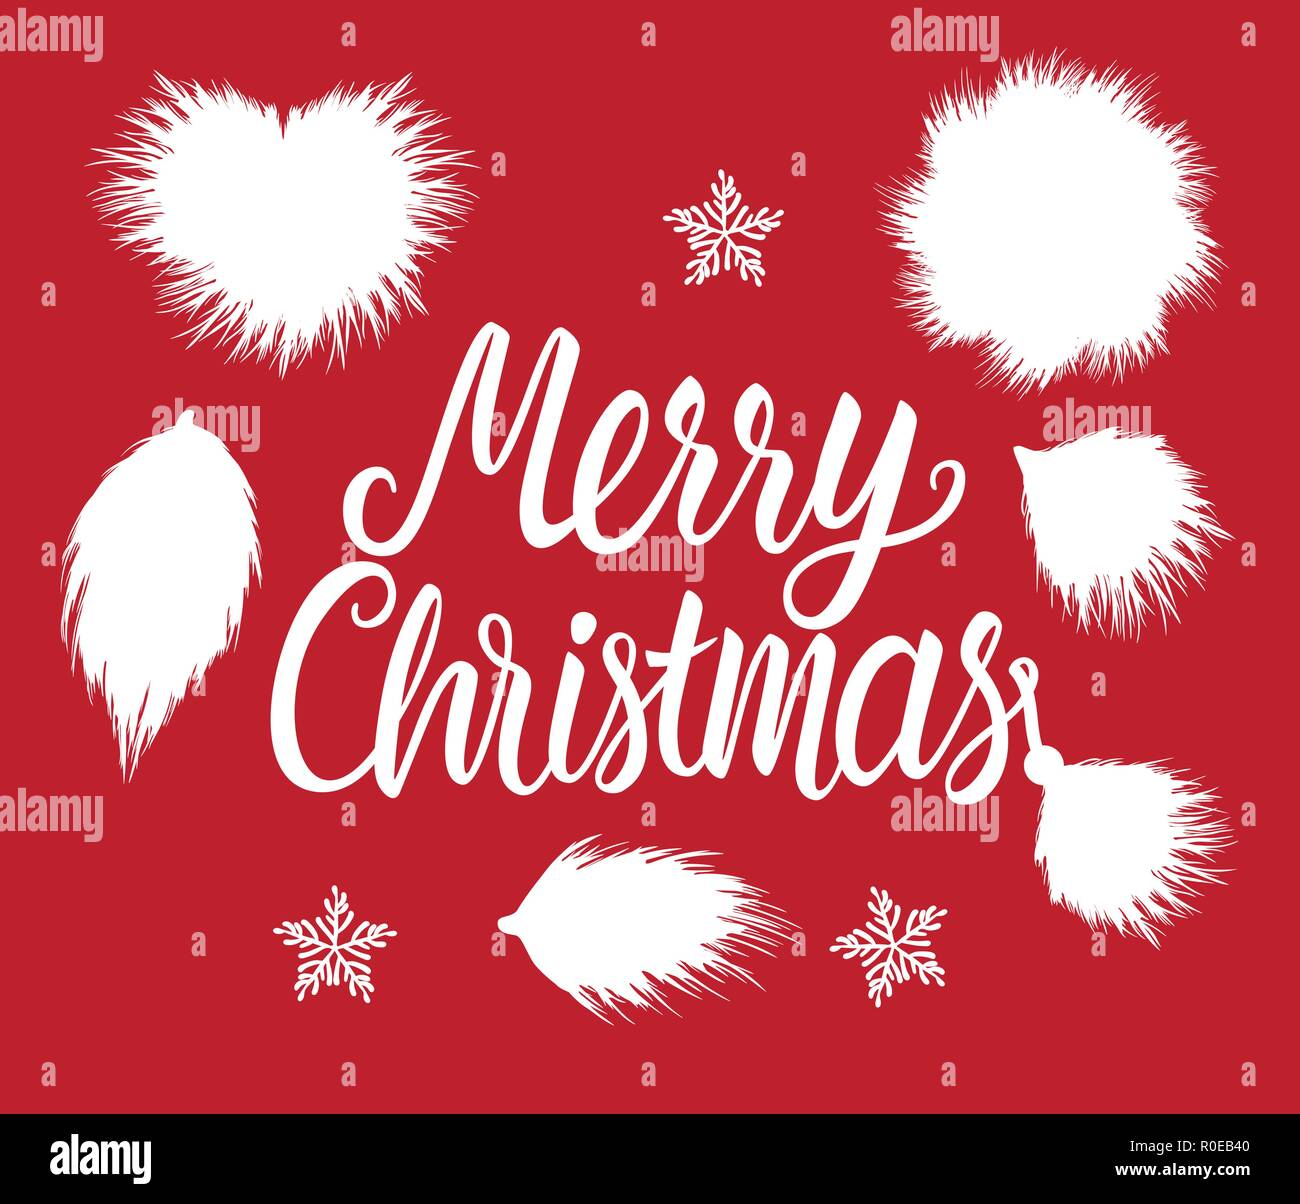 Merry Christmas lettering inscription. Fur forms winter white hand drawn fluffy isolated on red background. - Stock Vector